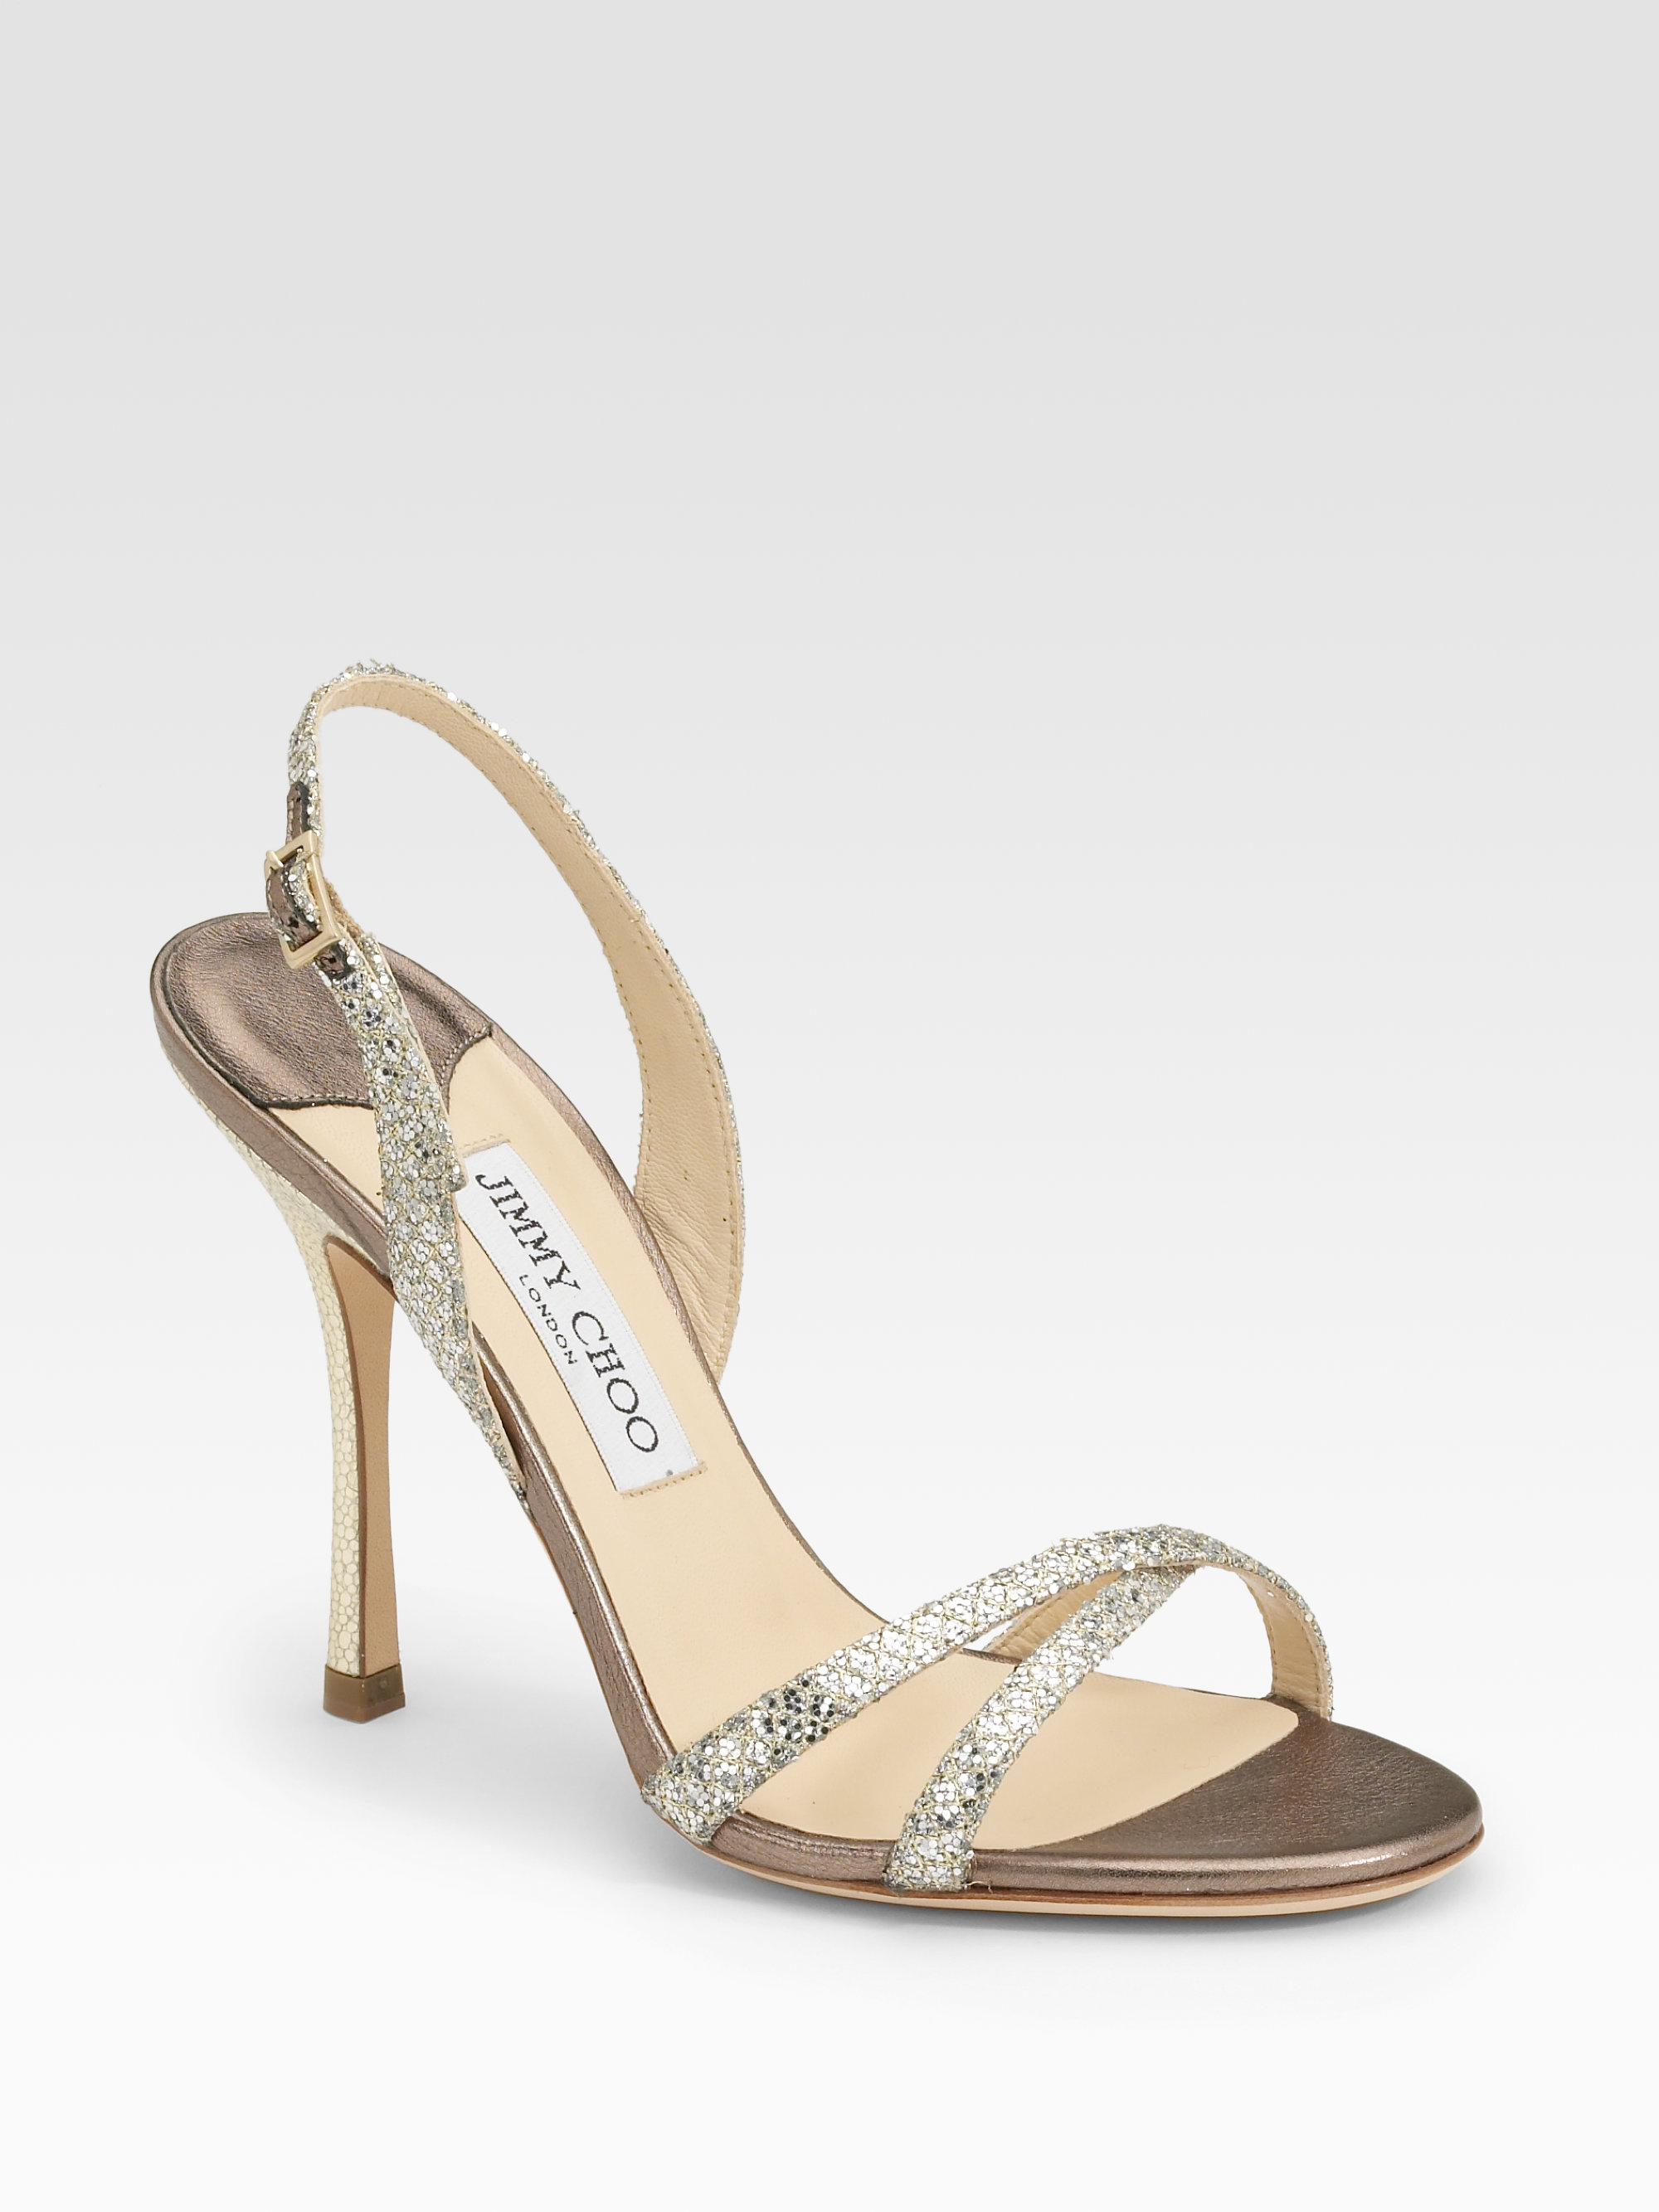 bd785453e8 Gallery. Previously sold at: Saks Fifth Avenue · Women's Jimmy Choo Glitter